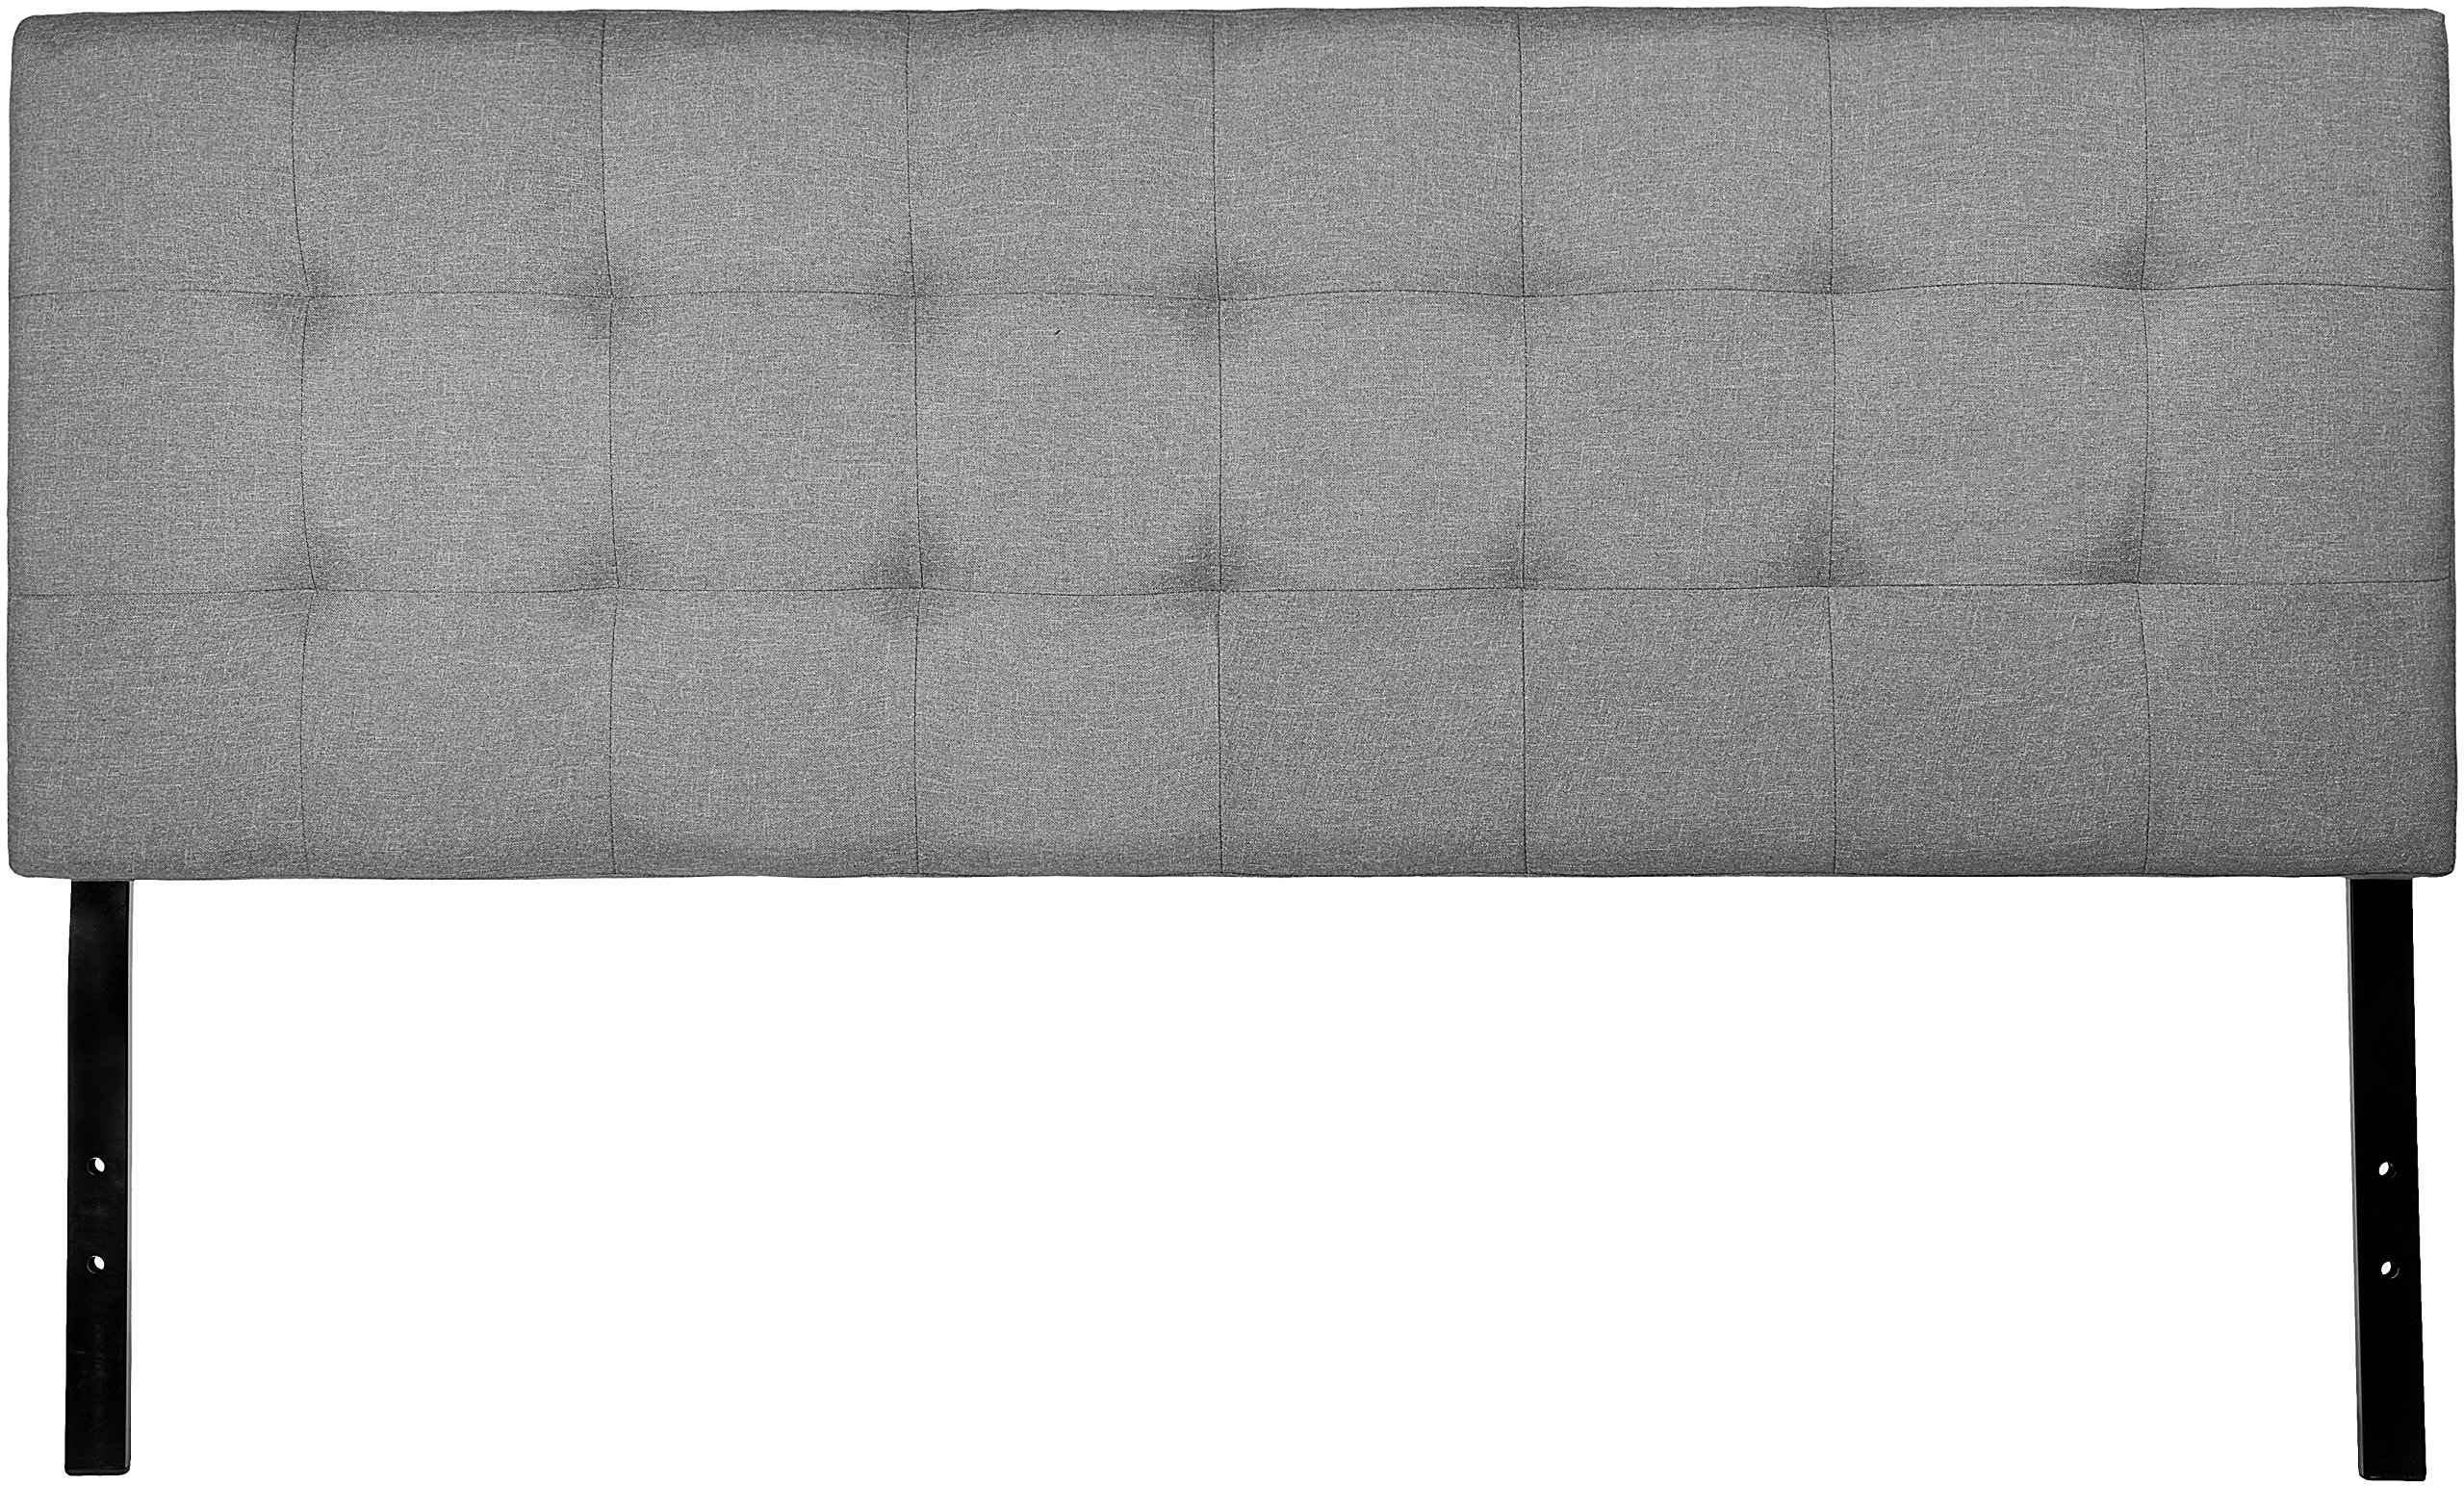 AmazonBasics Faux Linen Upholstered Tufted Headboard - Queen, Grey by AmazonBasics